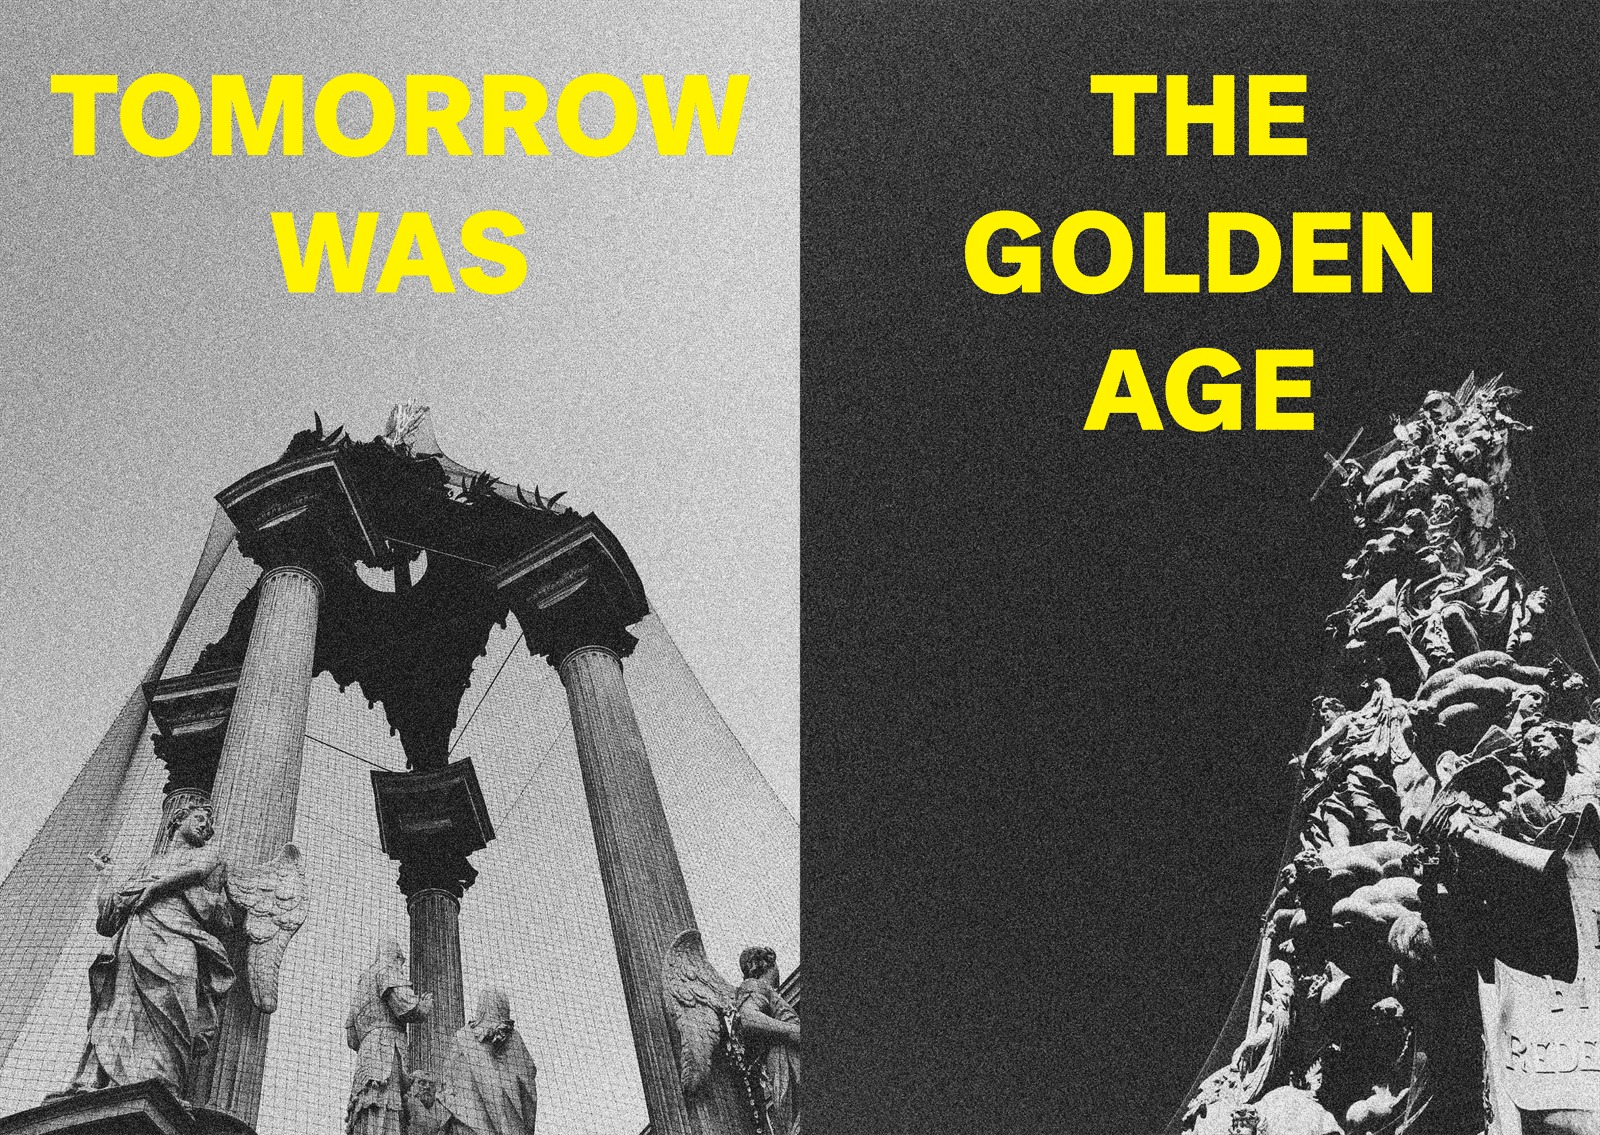 VERY RARE Tomorrow was the Golden Age zine, by Sven Harambasic